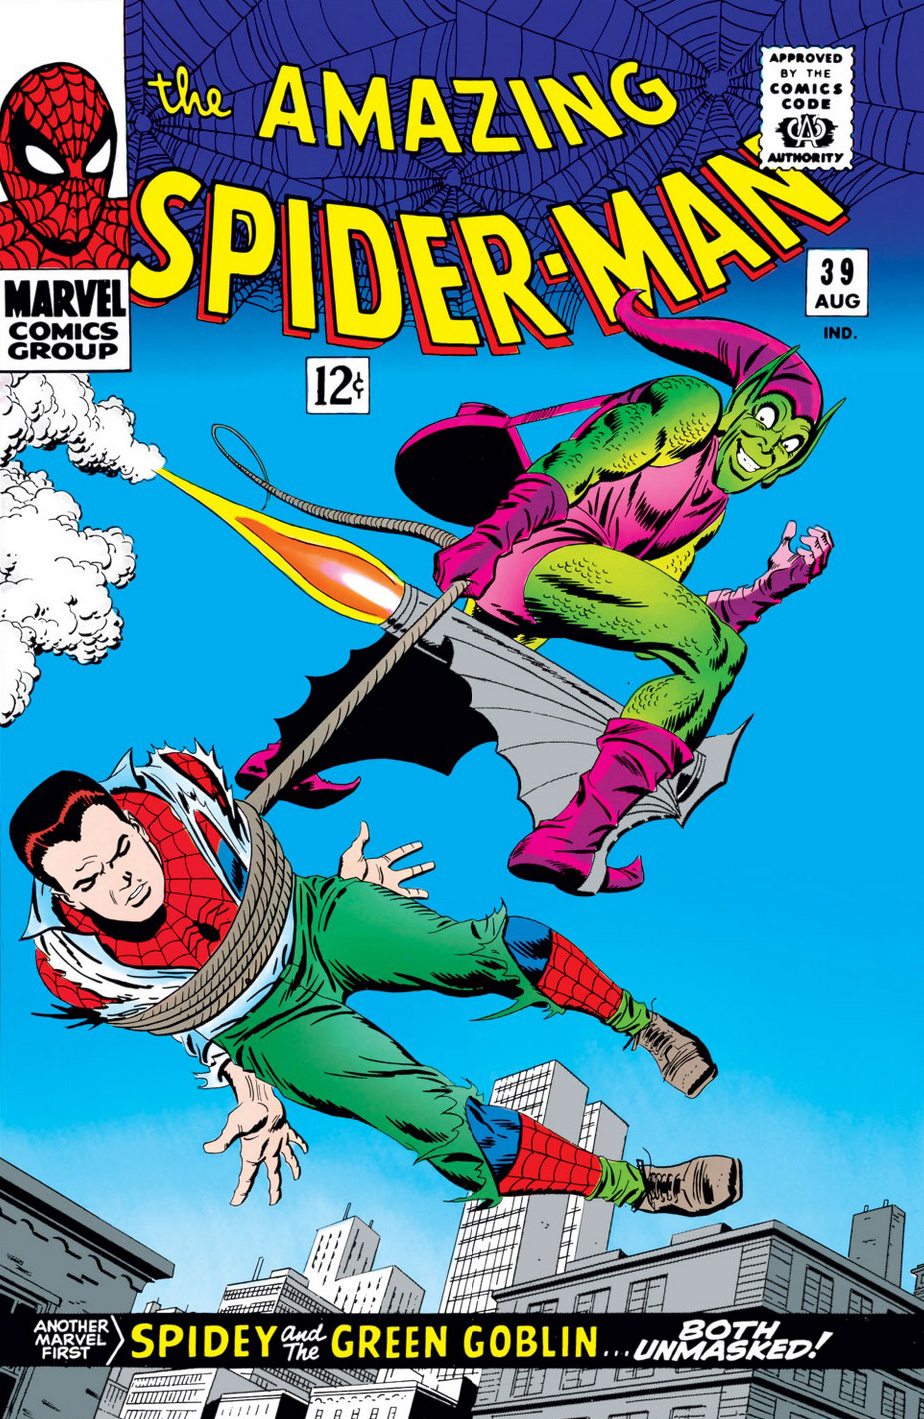 The Amazing Spider-Man (1963) #39